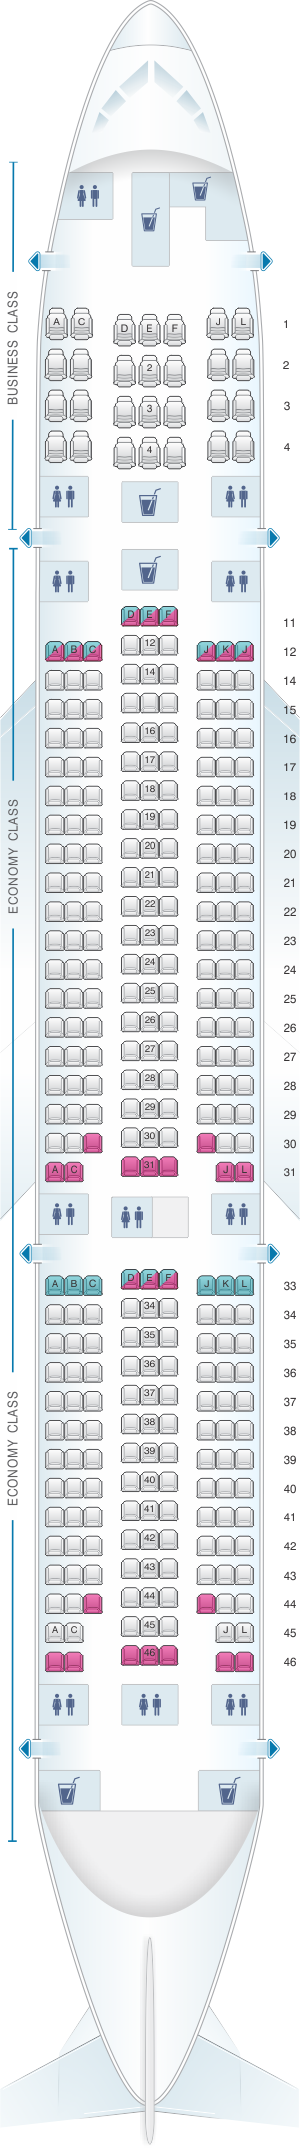 Seat Plan For The Aer Lingus A IRELAND Pinterest Planes - Us airways seating map